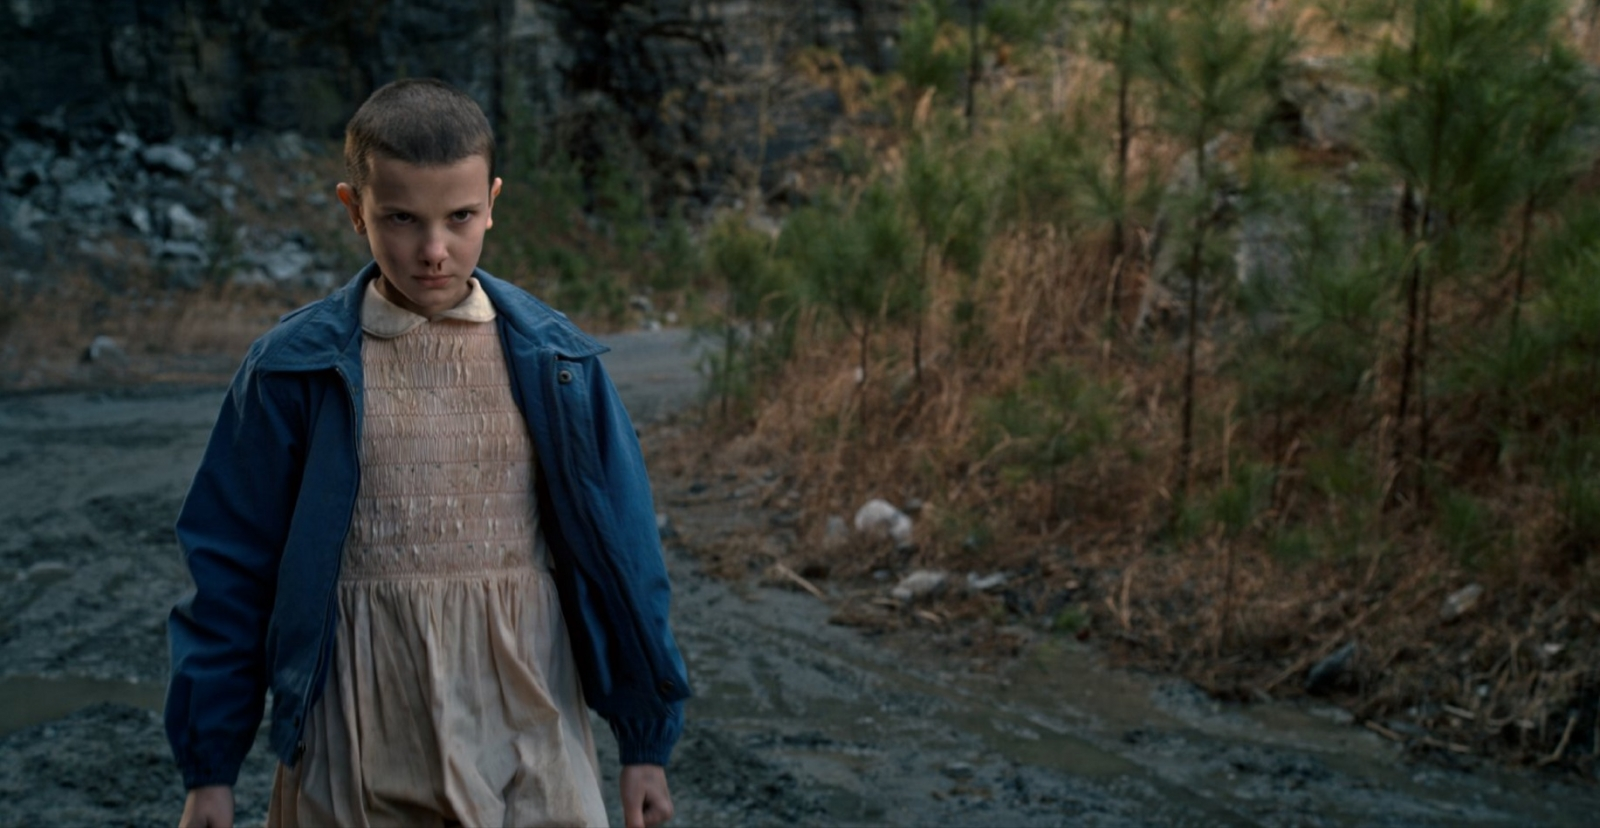 Millie Bobby Brown in Stranger Things